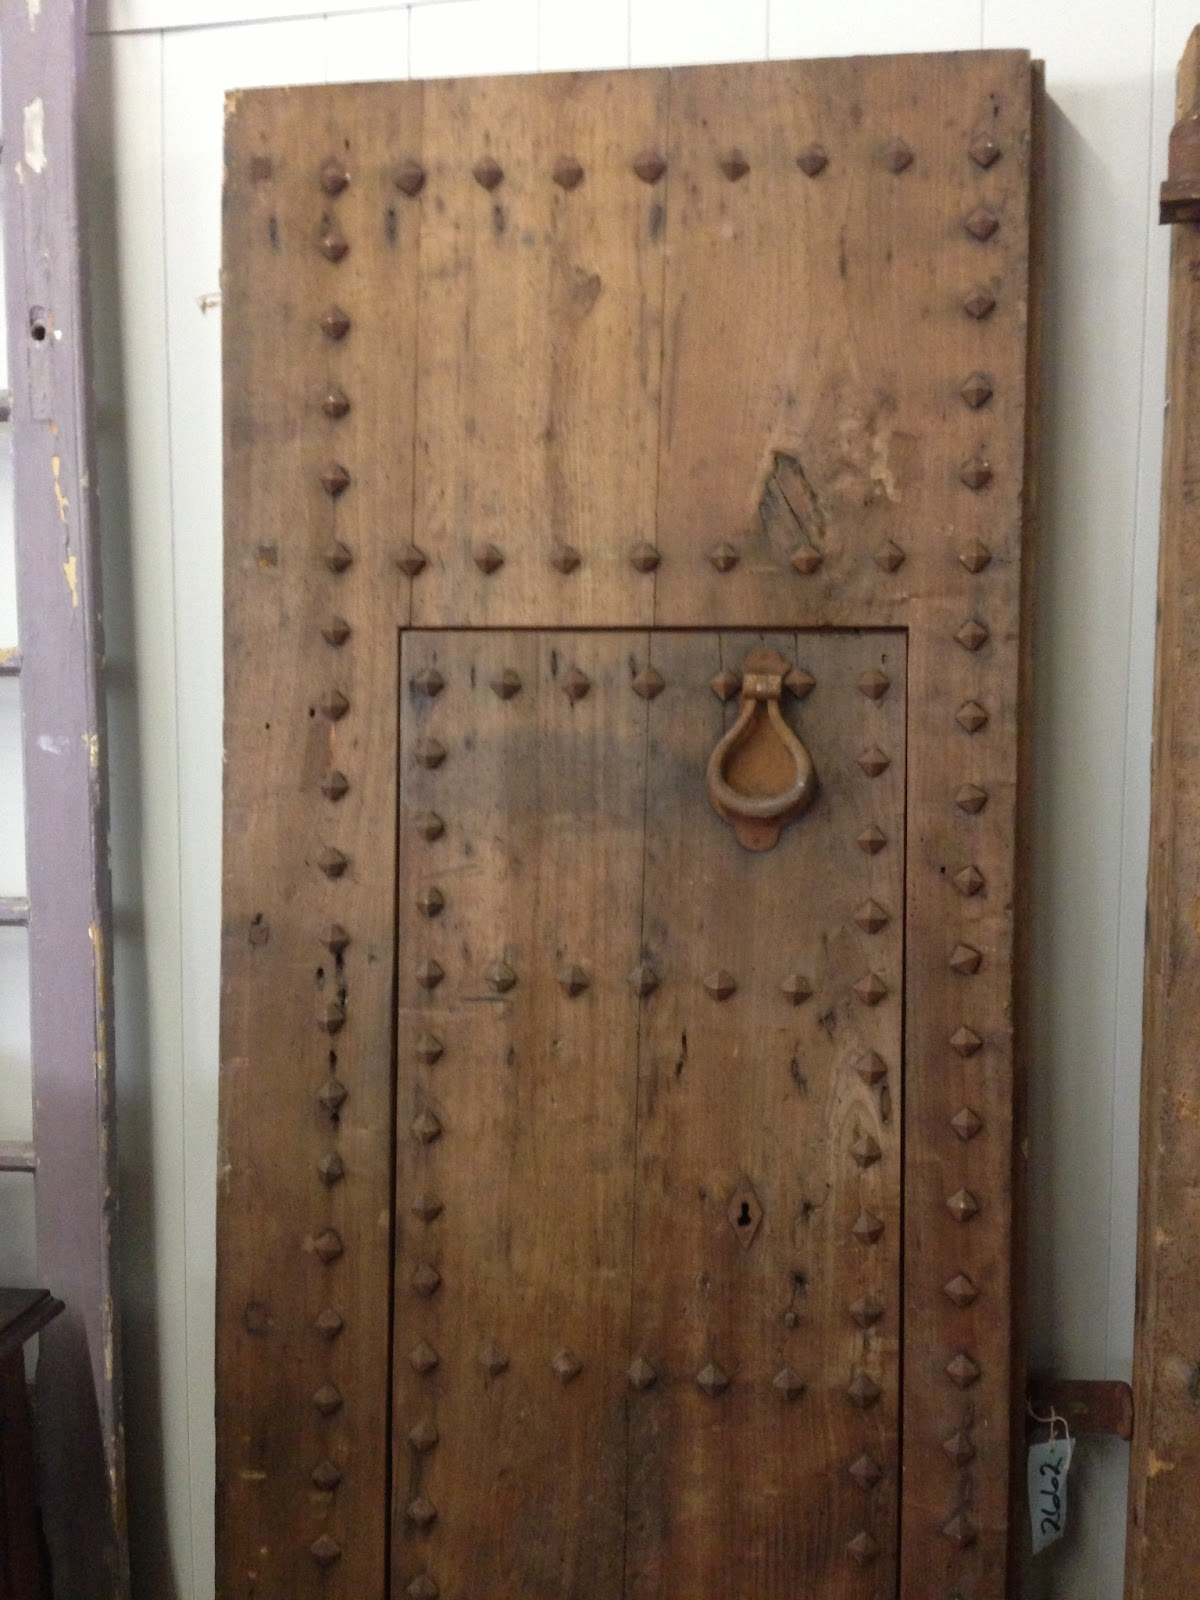 Pair of Spanish Doors - The Front Pictured Above - Yvonne McFadden Interiors: New Life For Antique Doors